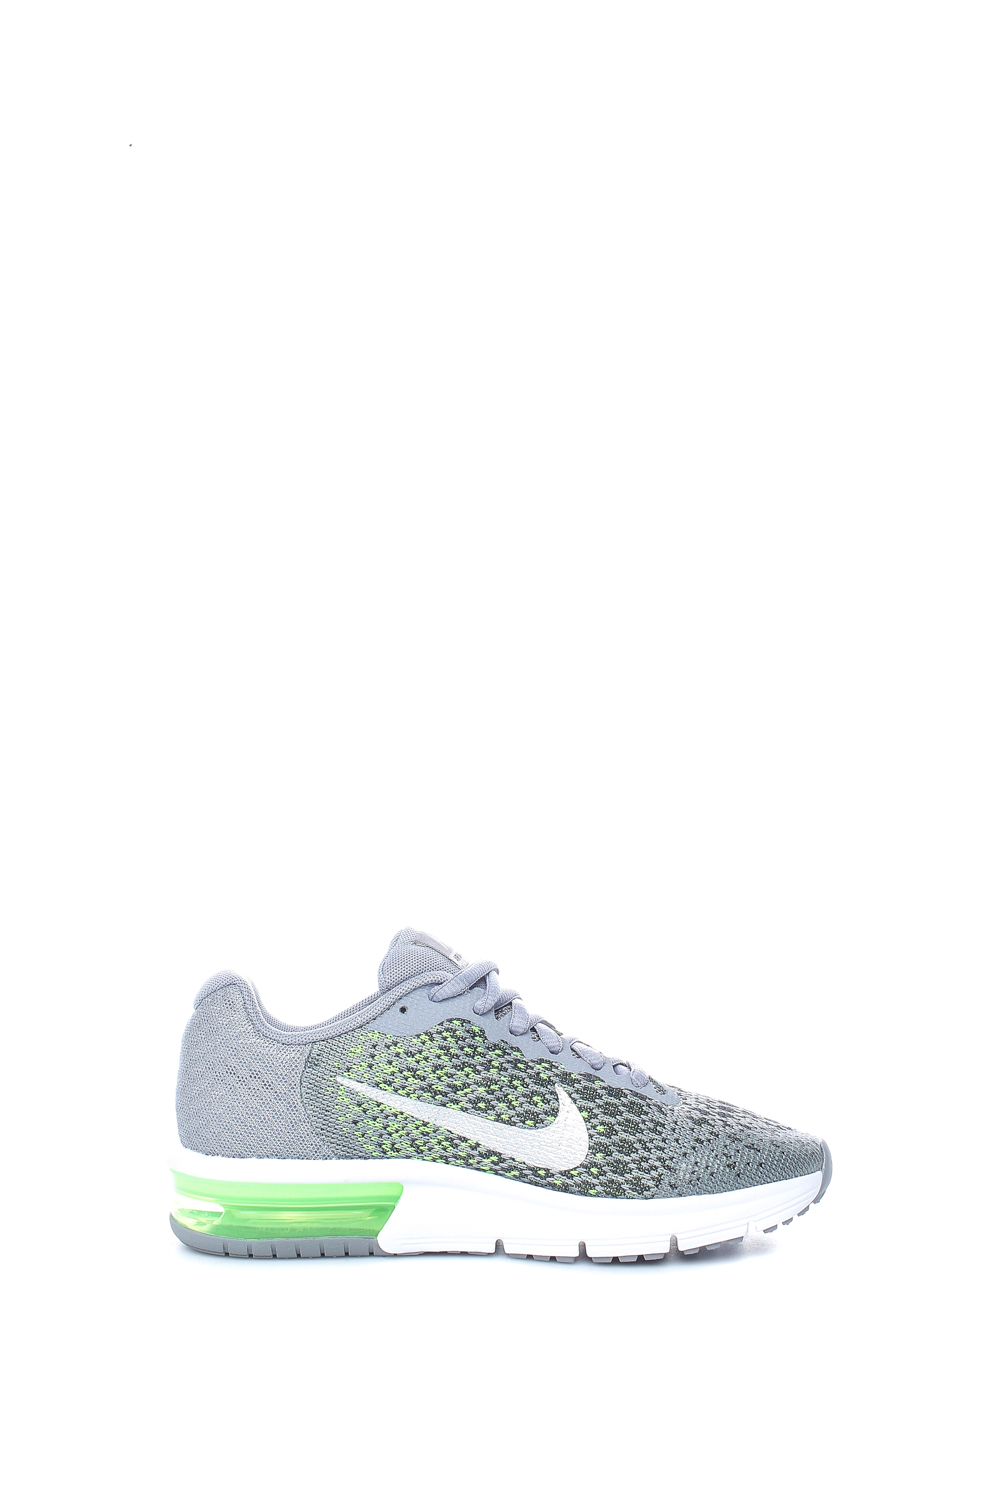 NIKE – Παιδικά παπούτσια Nike AIR MAX SEQUENT 2 (GS) γκρι – πράσινα